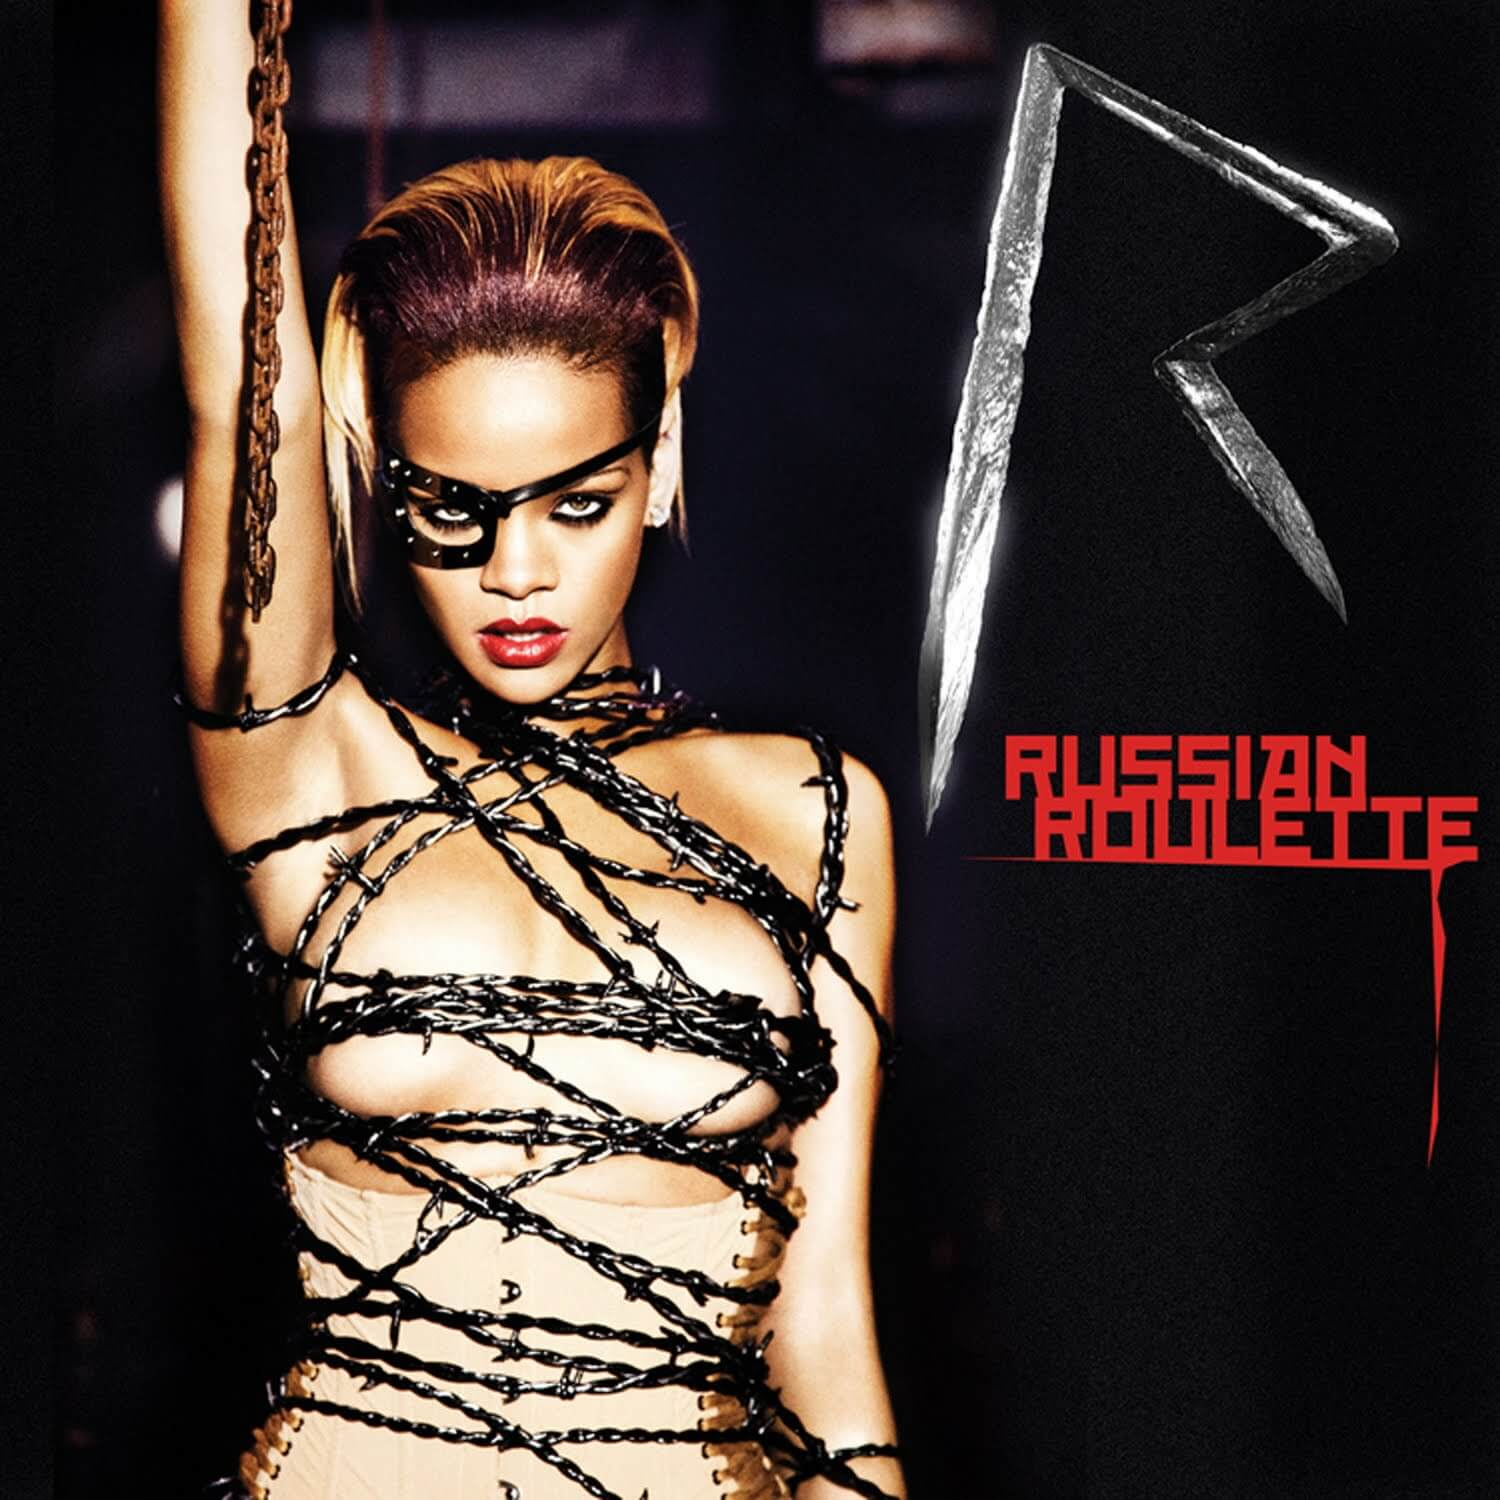 THE WAIT IS OVA! Rihanna's New Album, Rated R, Hits Monday, Nov. 23.  (PRNewsFoto/Island Def Jam Music Group)